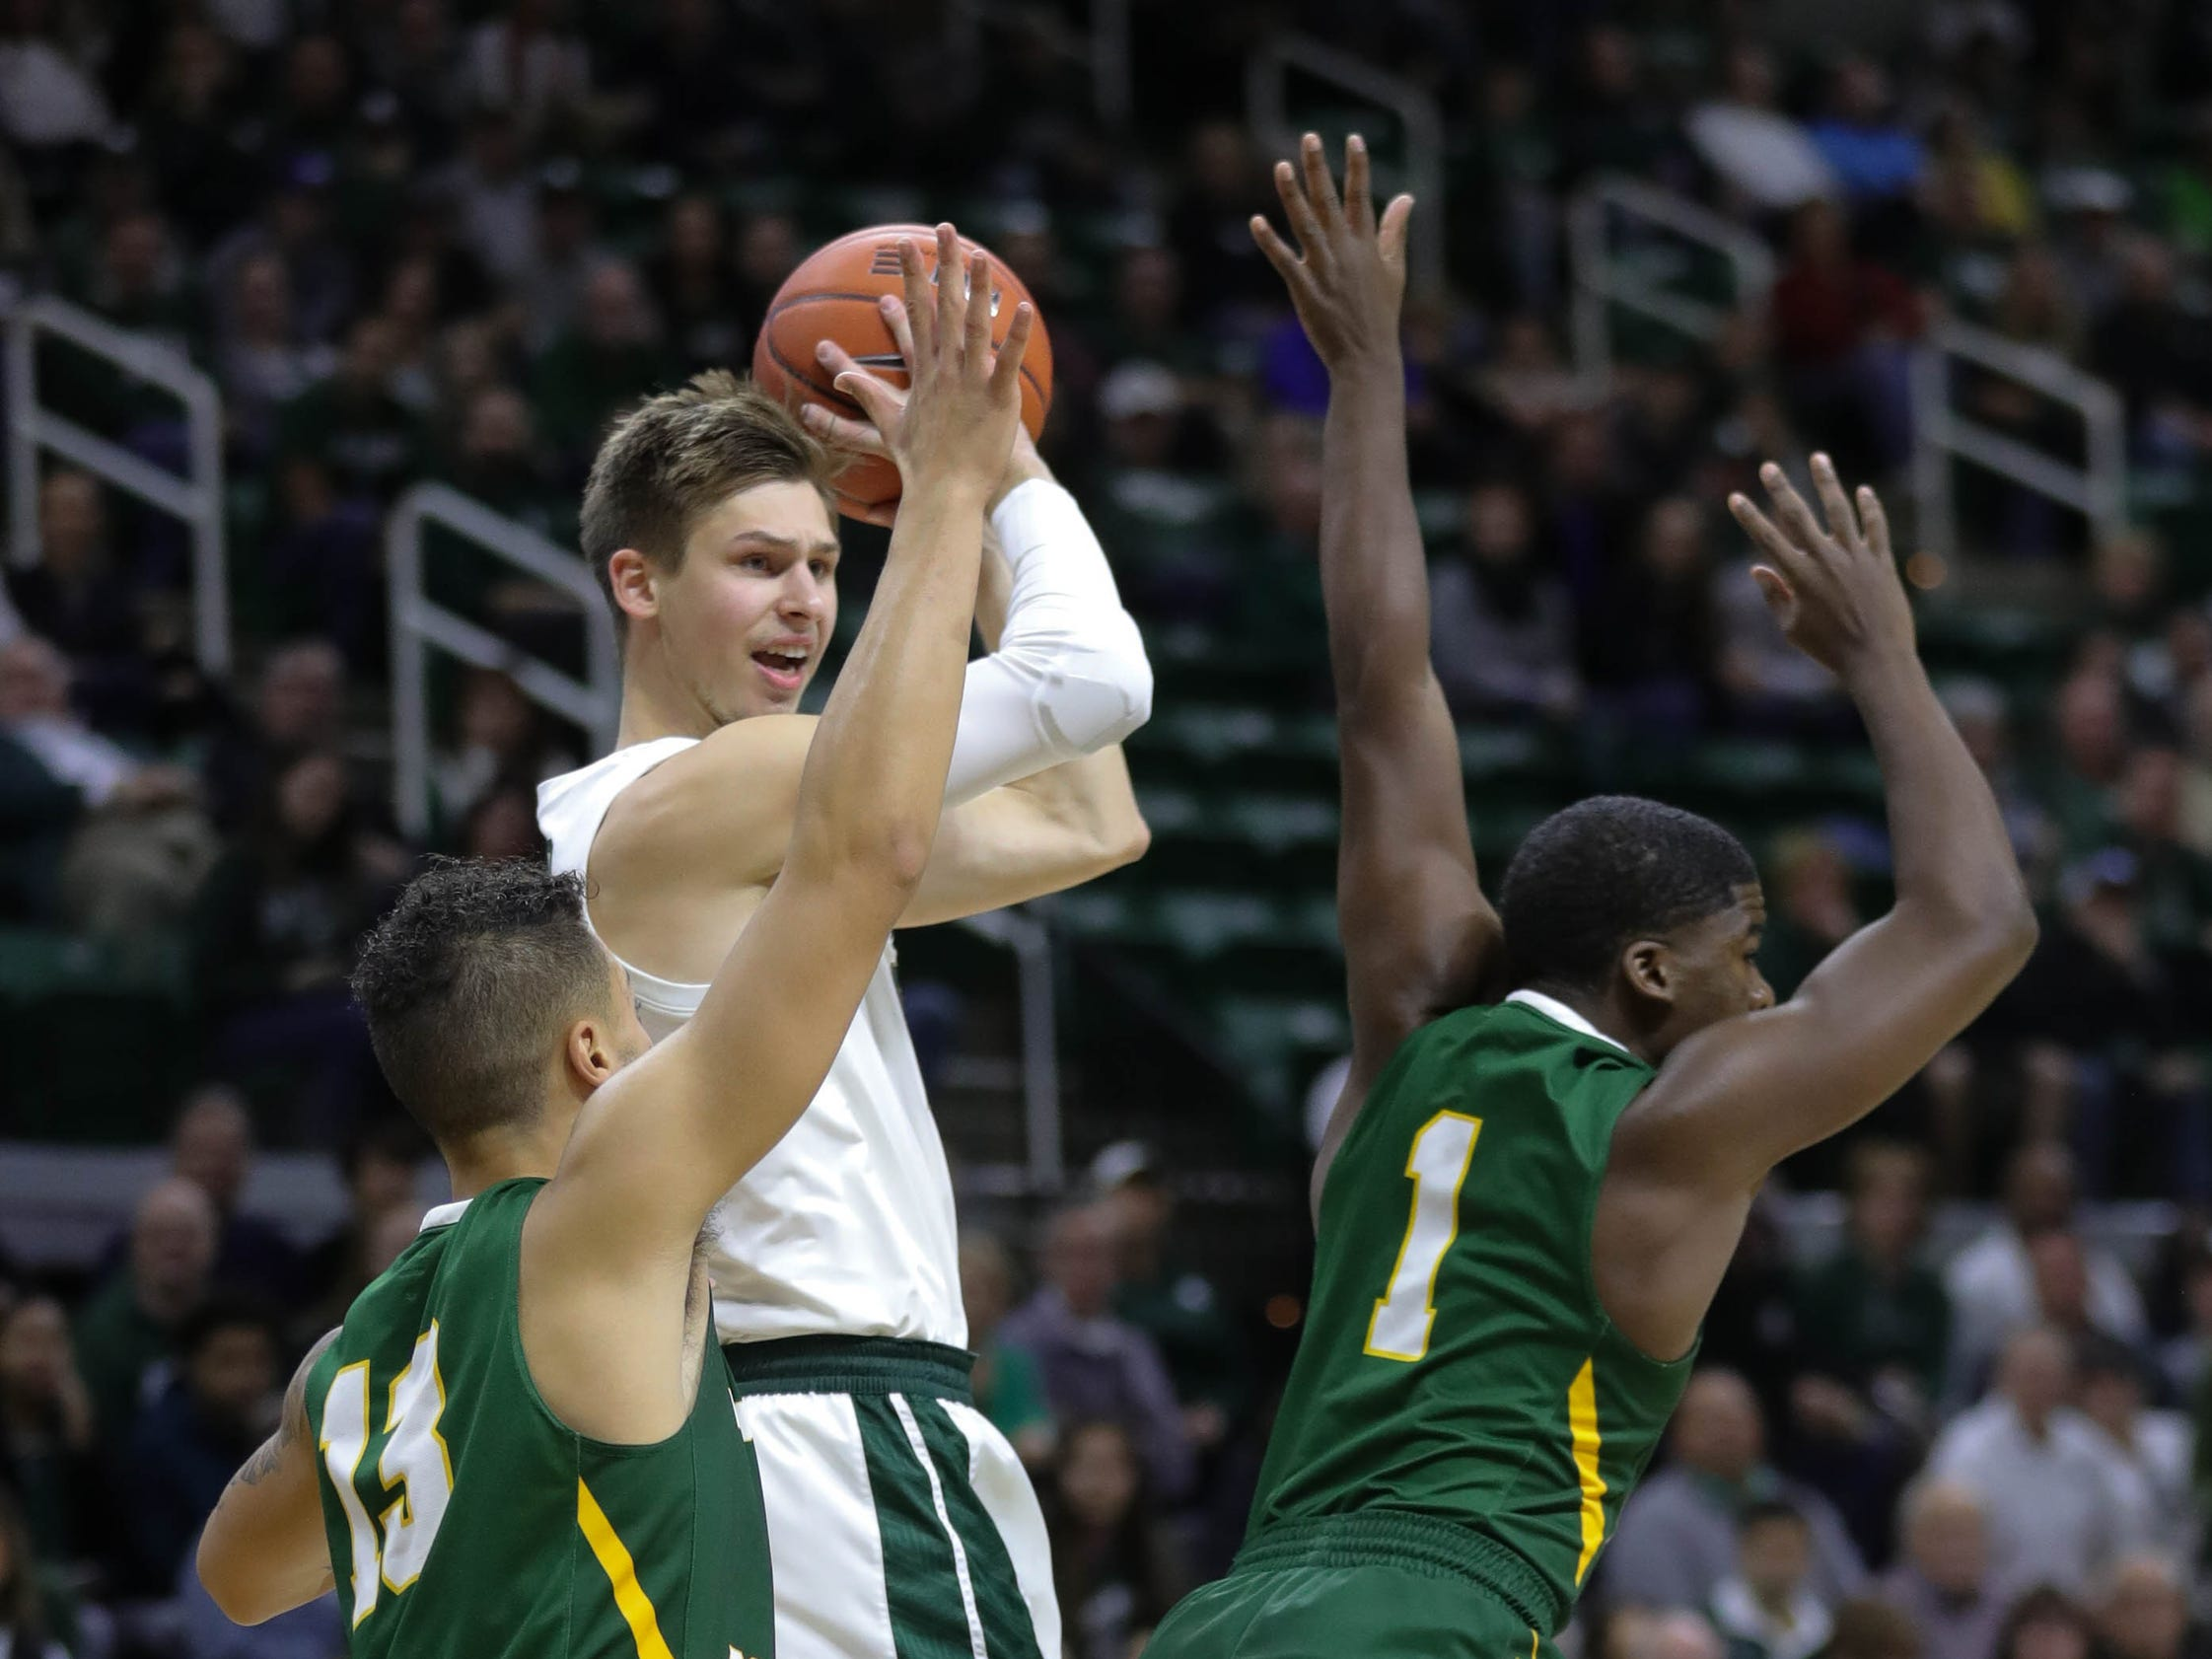 Michigan State guard Matt McQuaid passes against Northern Michigan defenders during the first half Tuesday, Oct. 30, 2018 at the Breslin Center in East Lansing.